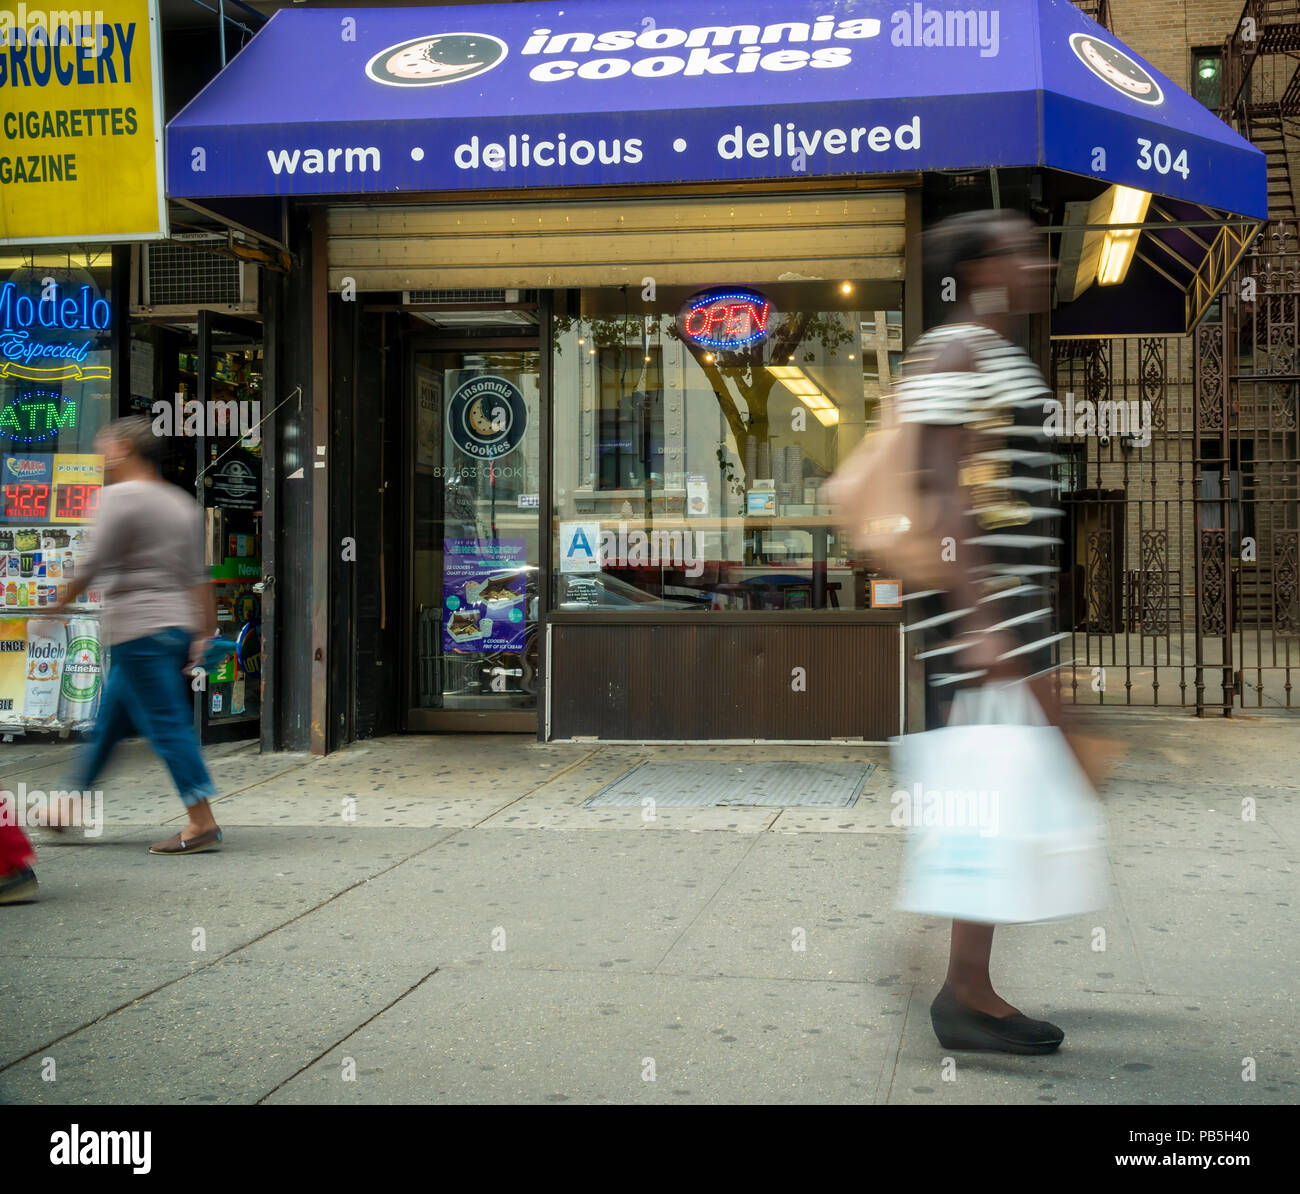 An Insomnia Cookies store in Greenwich Village in New York on Friday, July 20, 2018. Krispy Kreme, backed by its parent JAB Holdings, is purchasing Insomnia Cookies for an undisclosed amount.  (© Richard B. Levine) - Stock Image